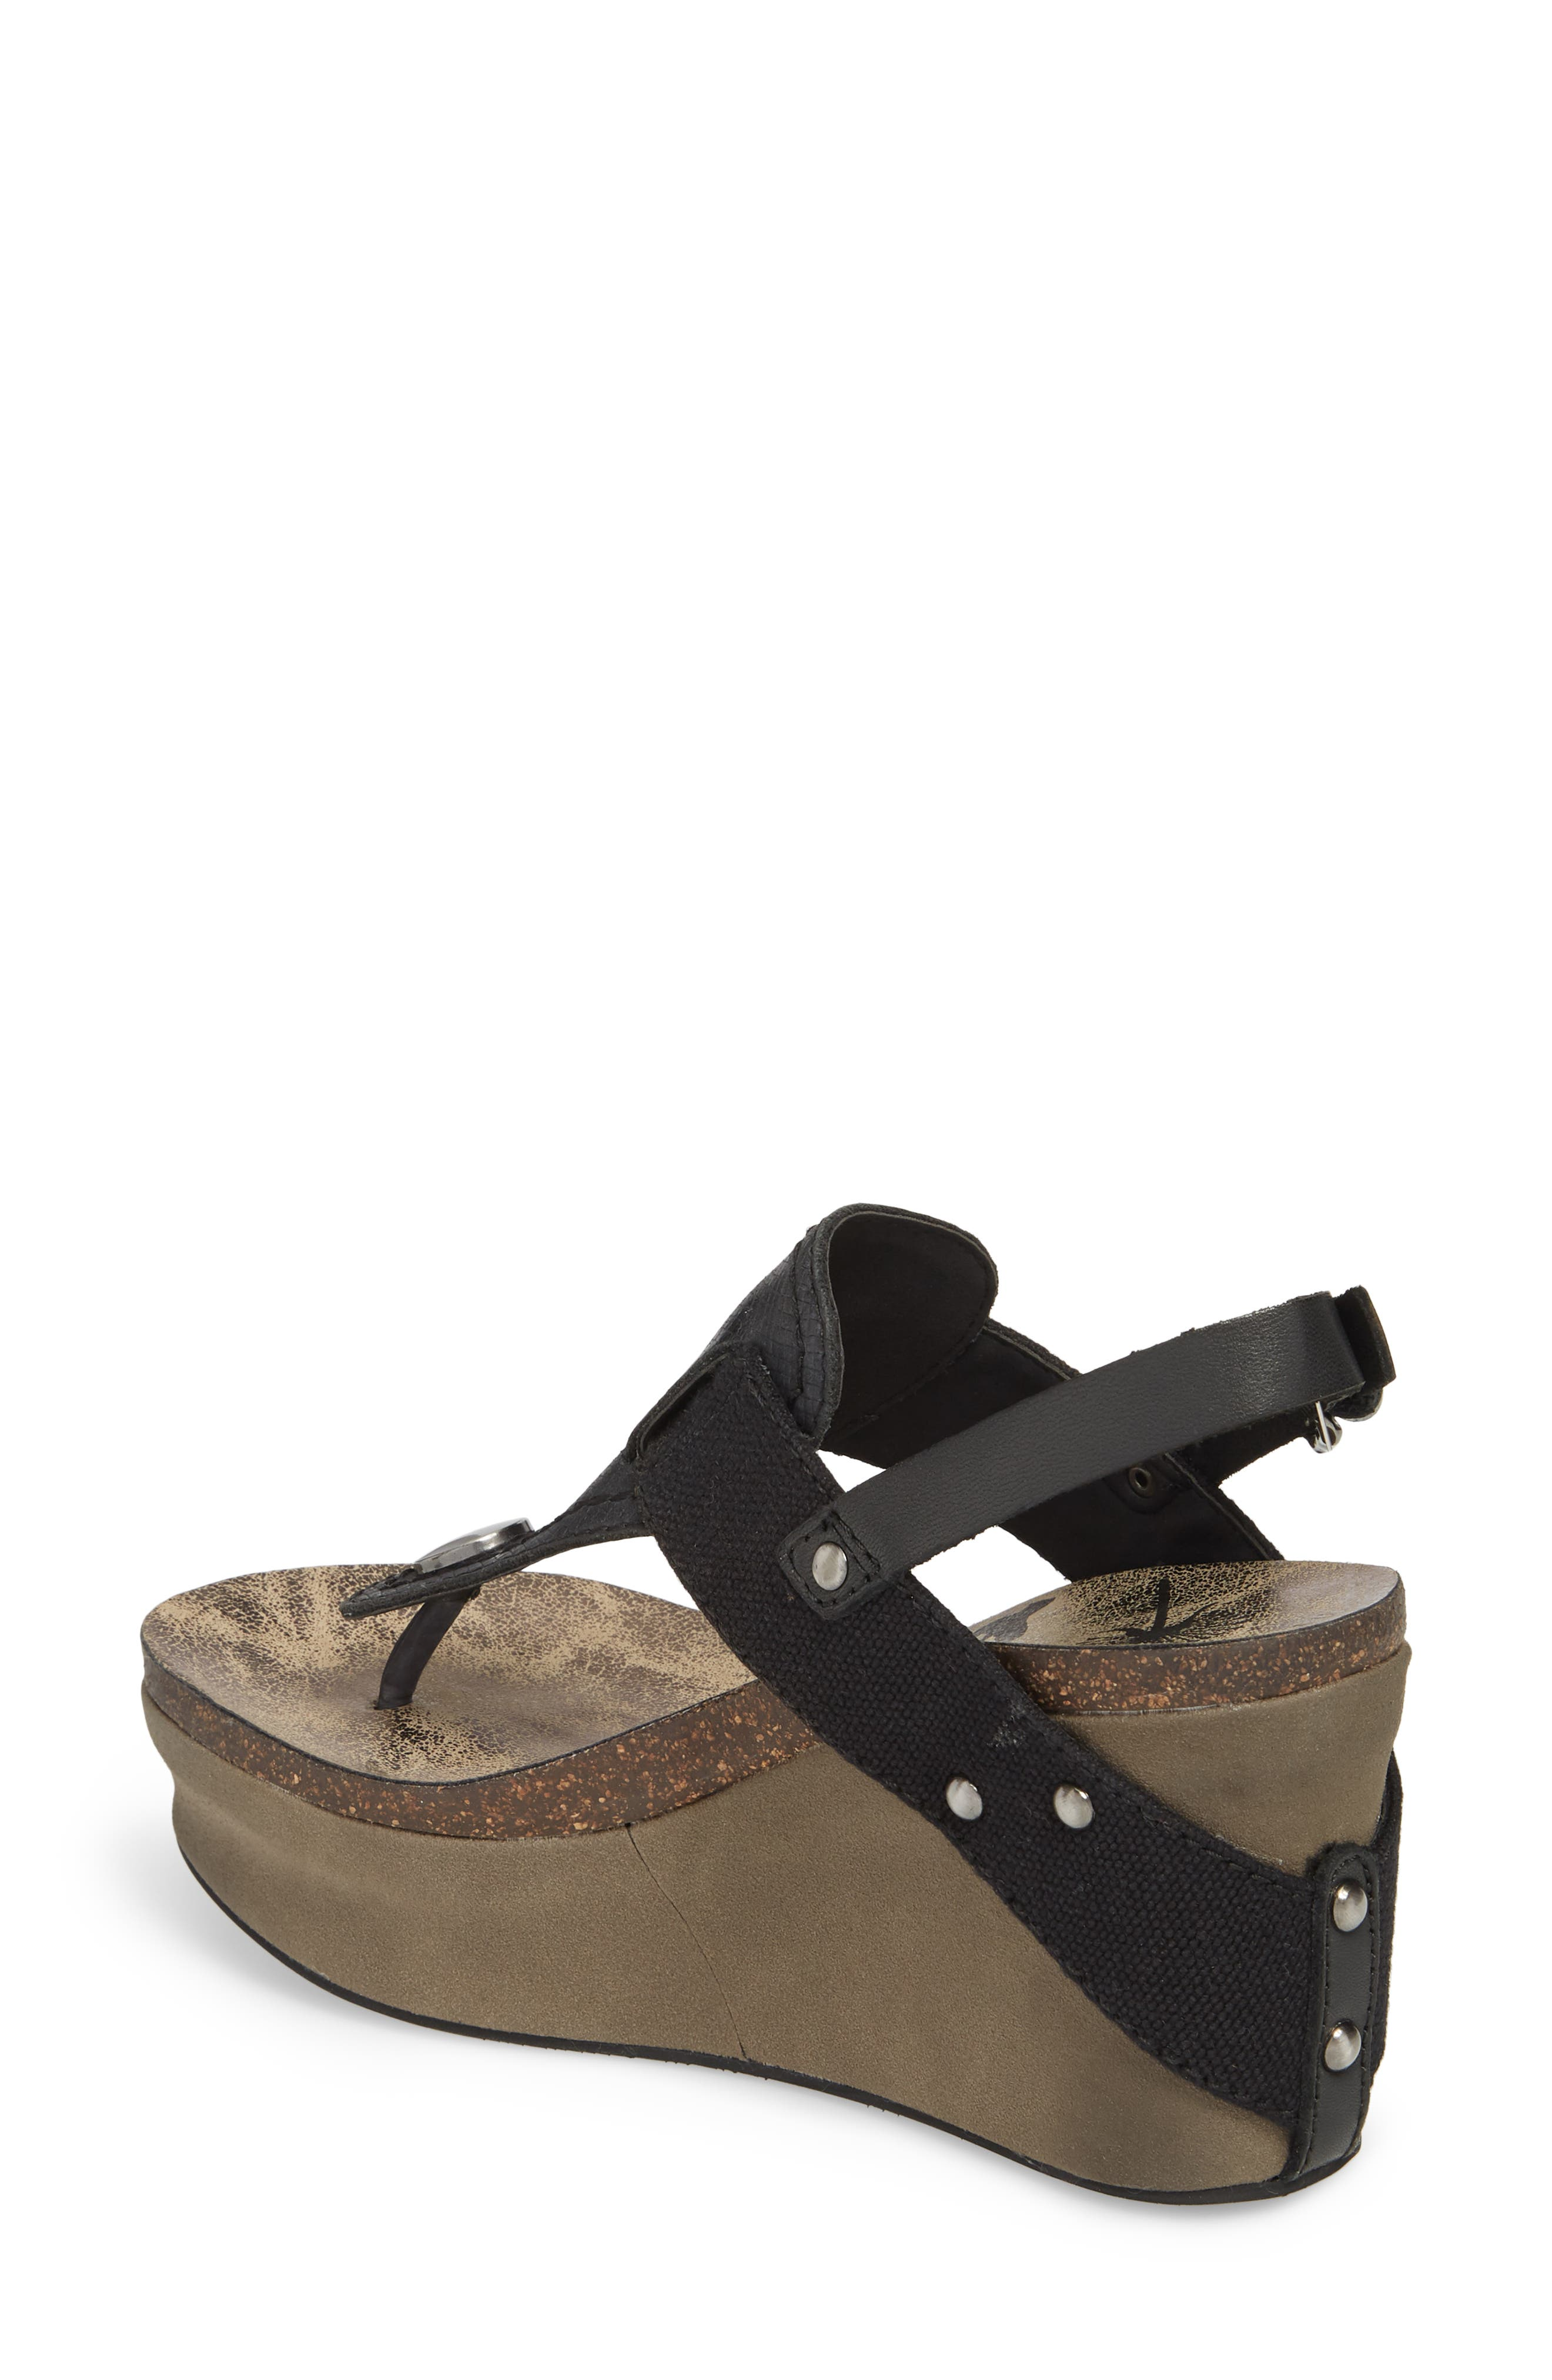 Joyride Wedge Sandal,                             Alternate thumbnail 2, color,                             Black Leather